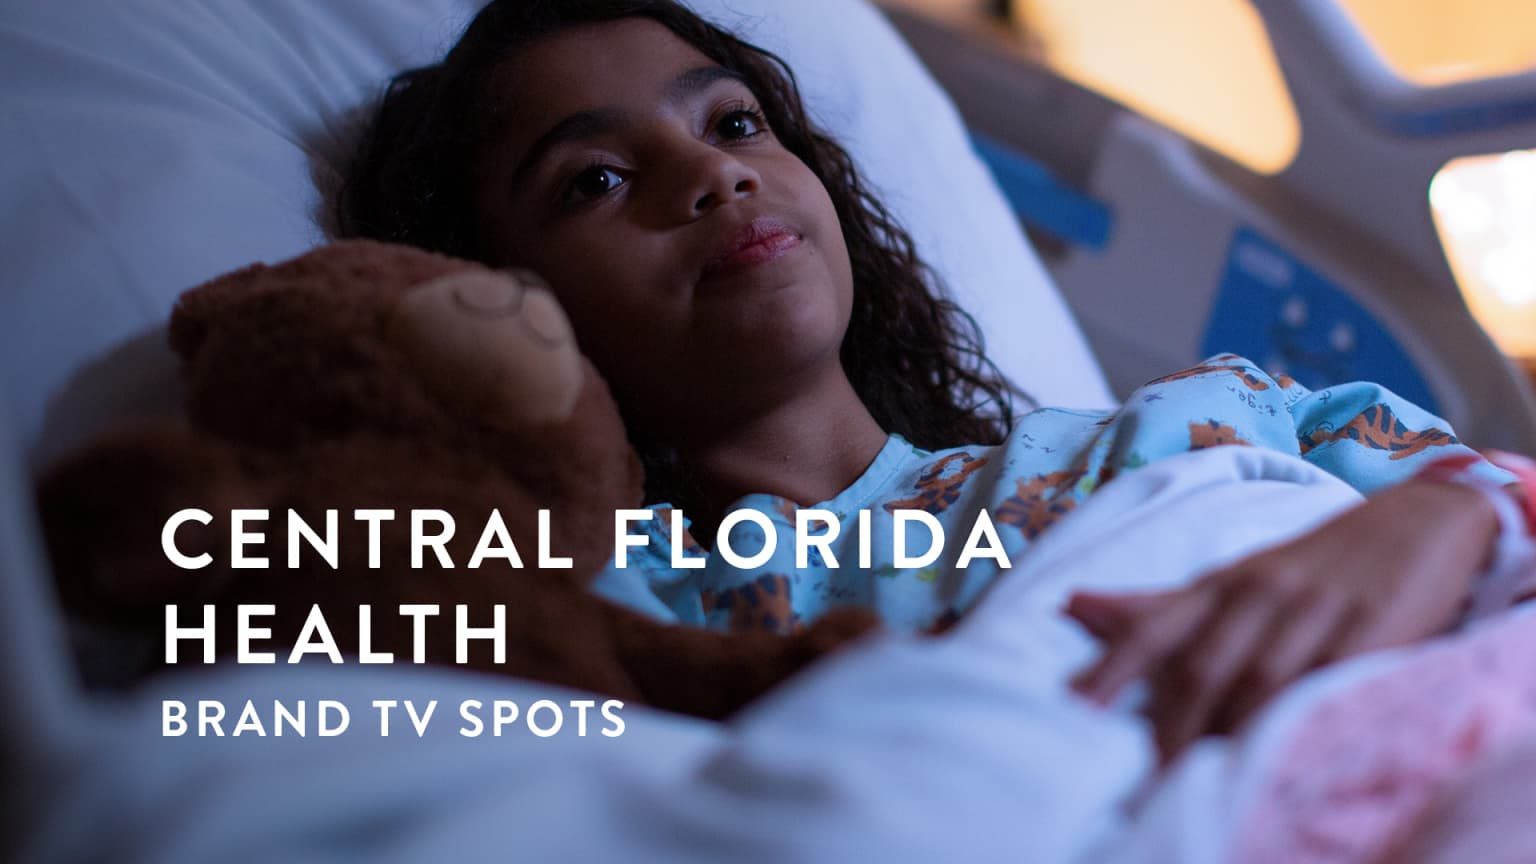 Central Florida Health Brand Campaign - TV + Stills